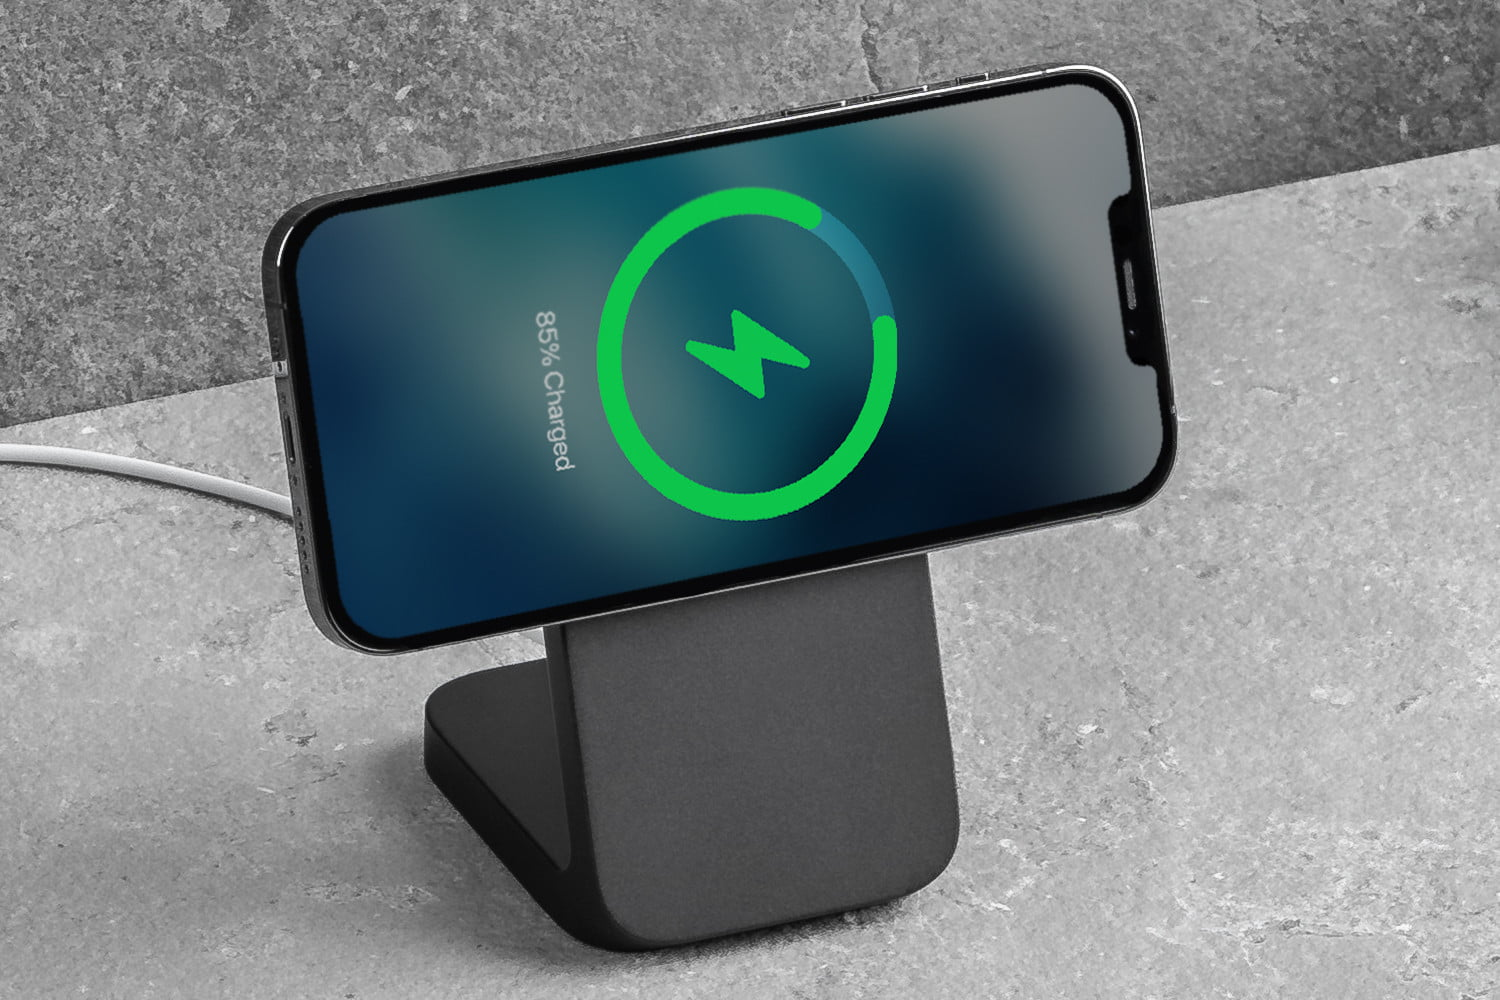 Nomad MagSafe Mount Stand with iPhone charging in landscape orientation.